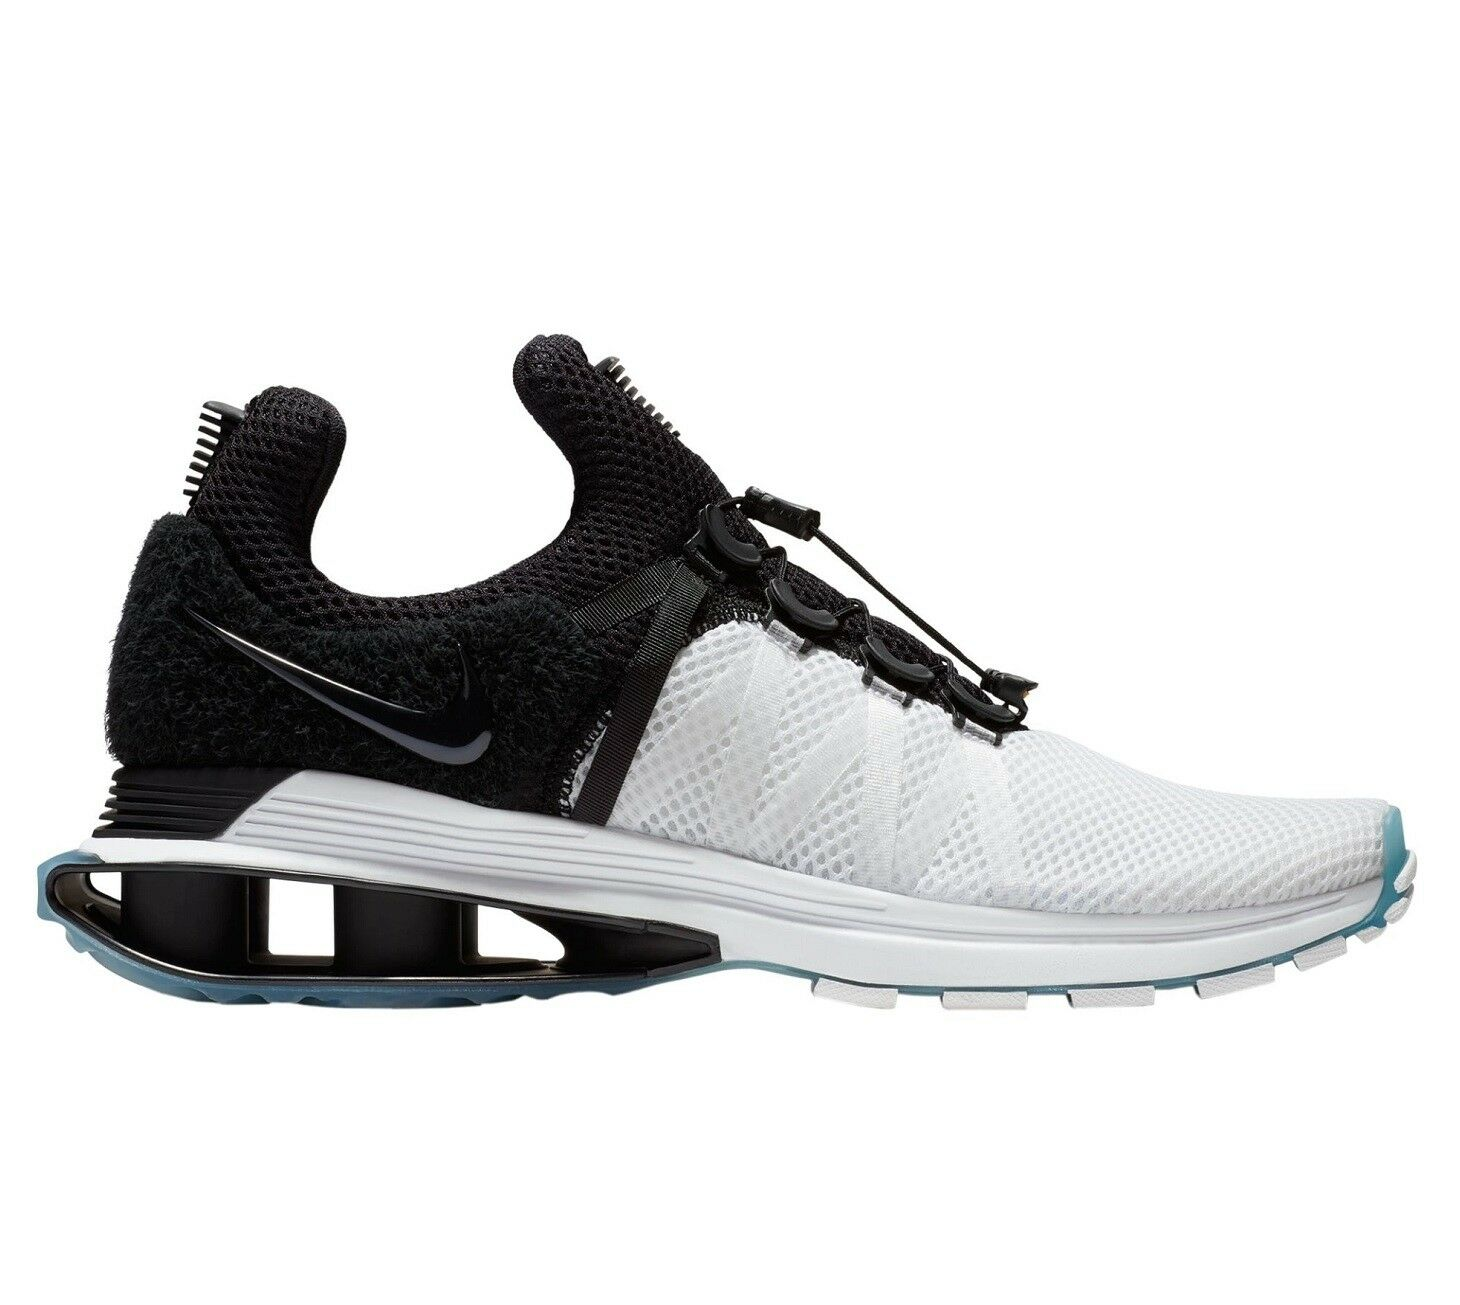 Nike Shox Gravity Mens AR1999-101 White Black Mesh Running Shoes Comfortable Seasonal price cuts, discount benefits